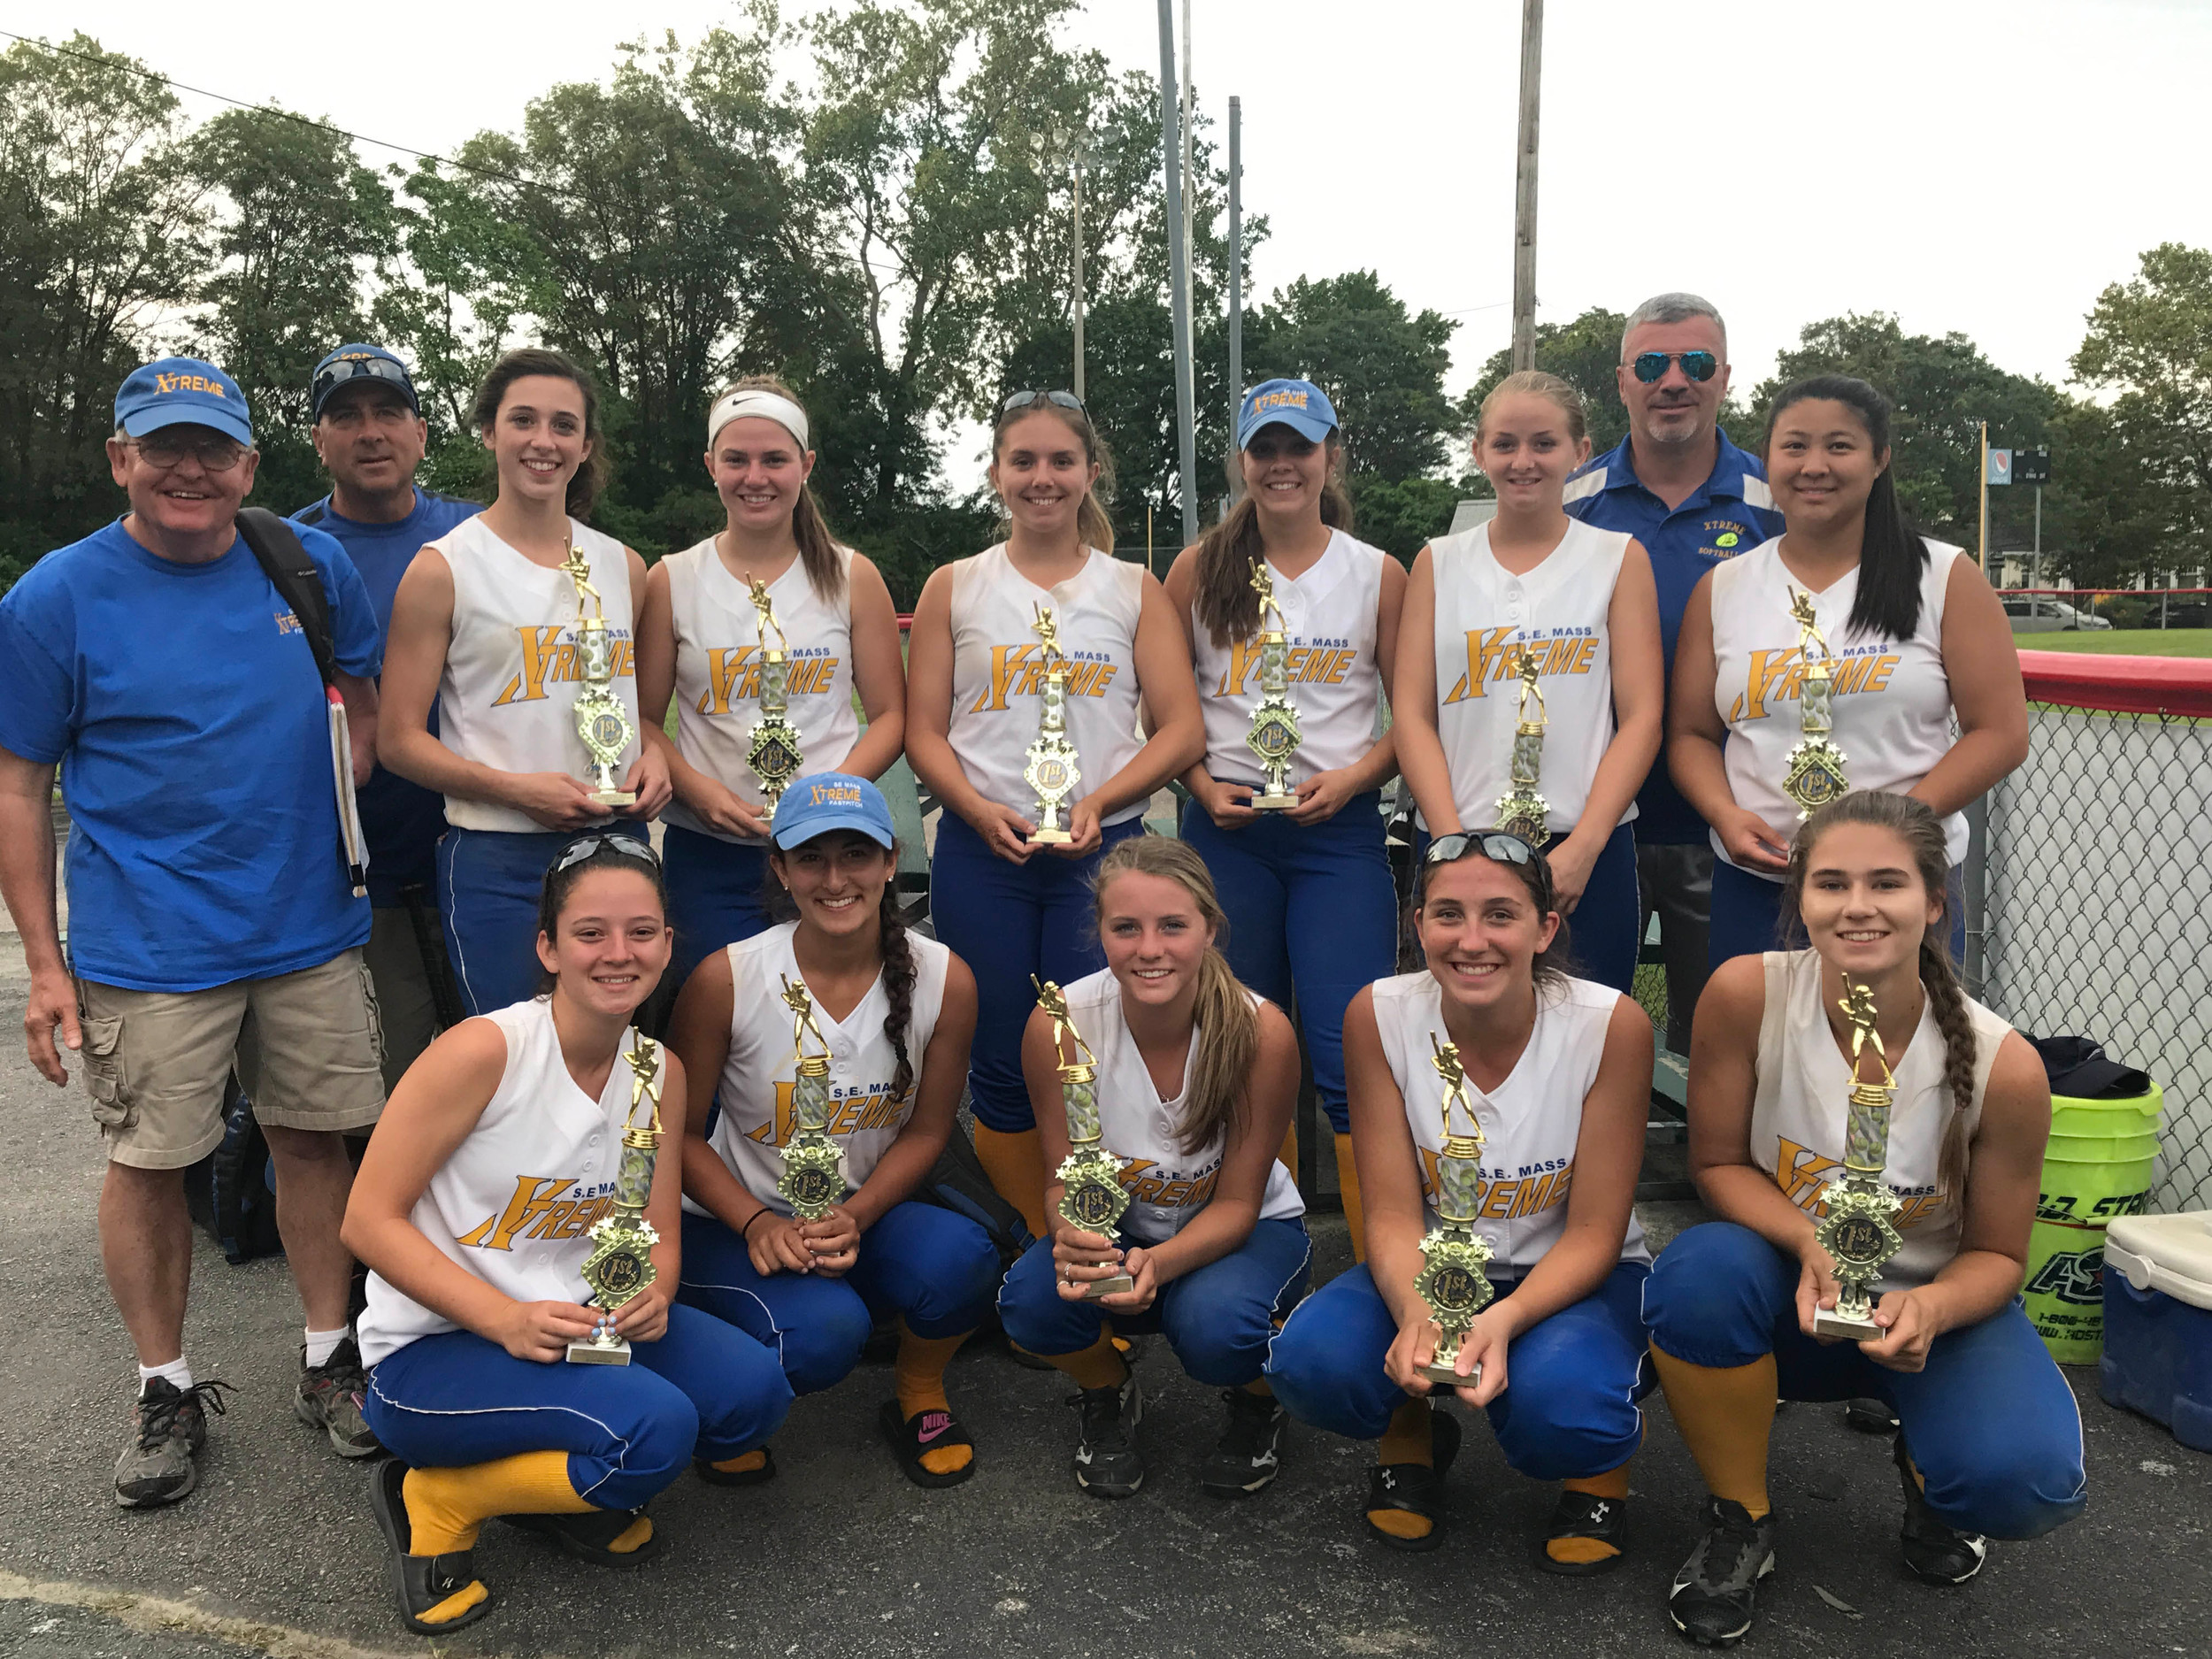 Front row:  Carissa Rego(Seekonk), Sadie Patterson(East Providence), Alexa White, Brianna Gendreau, Ashley Soares